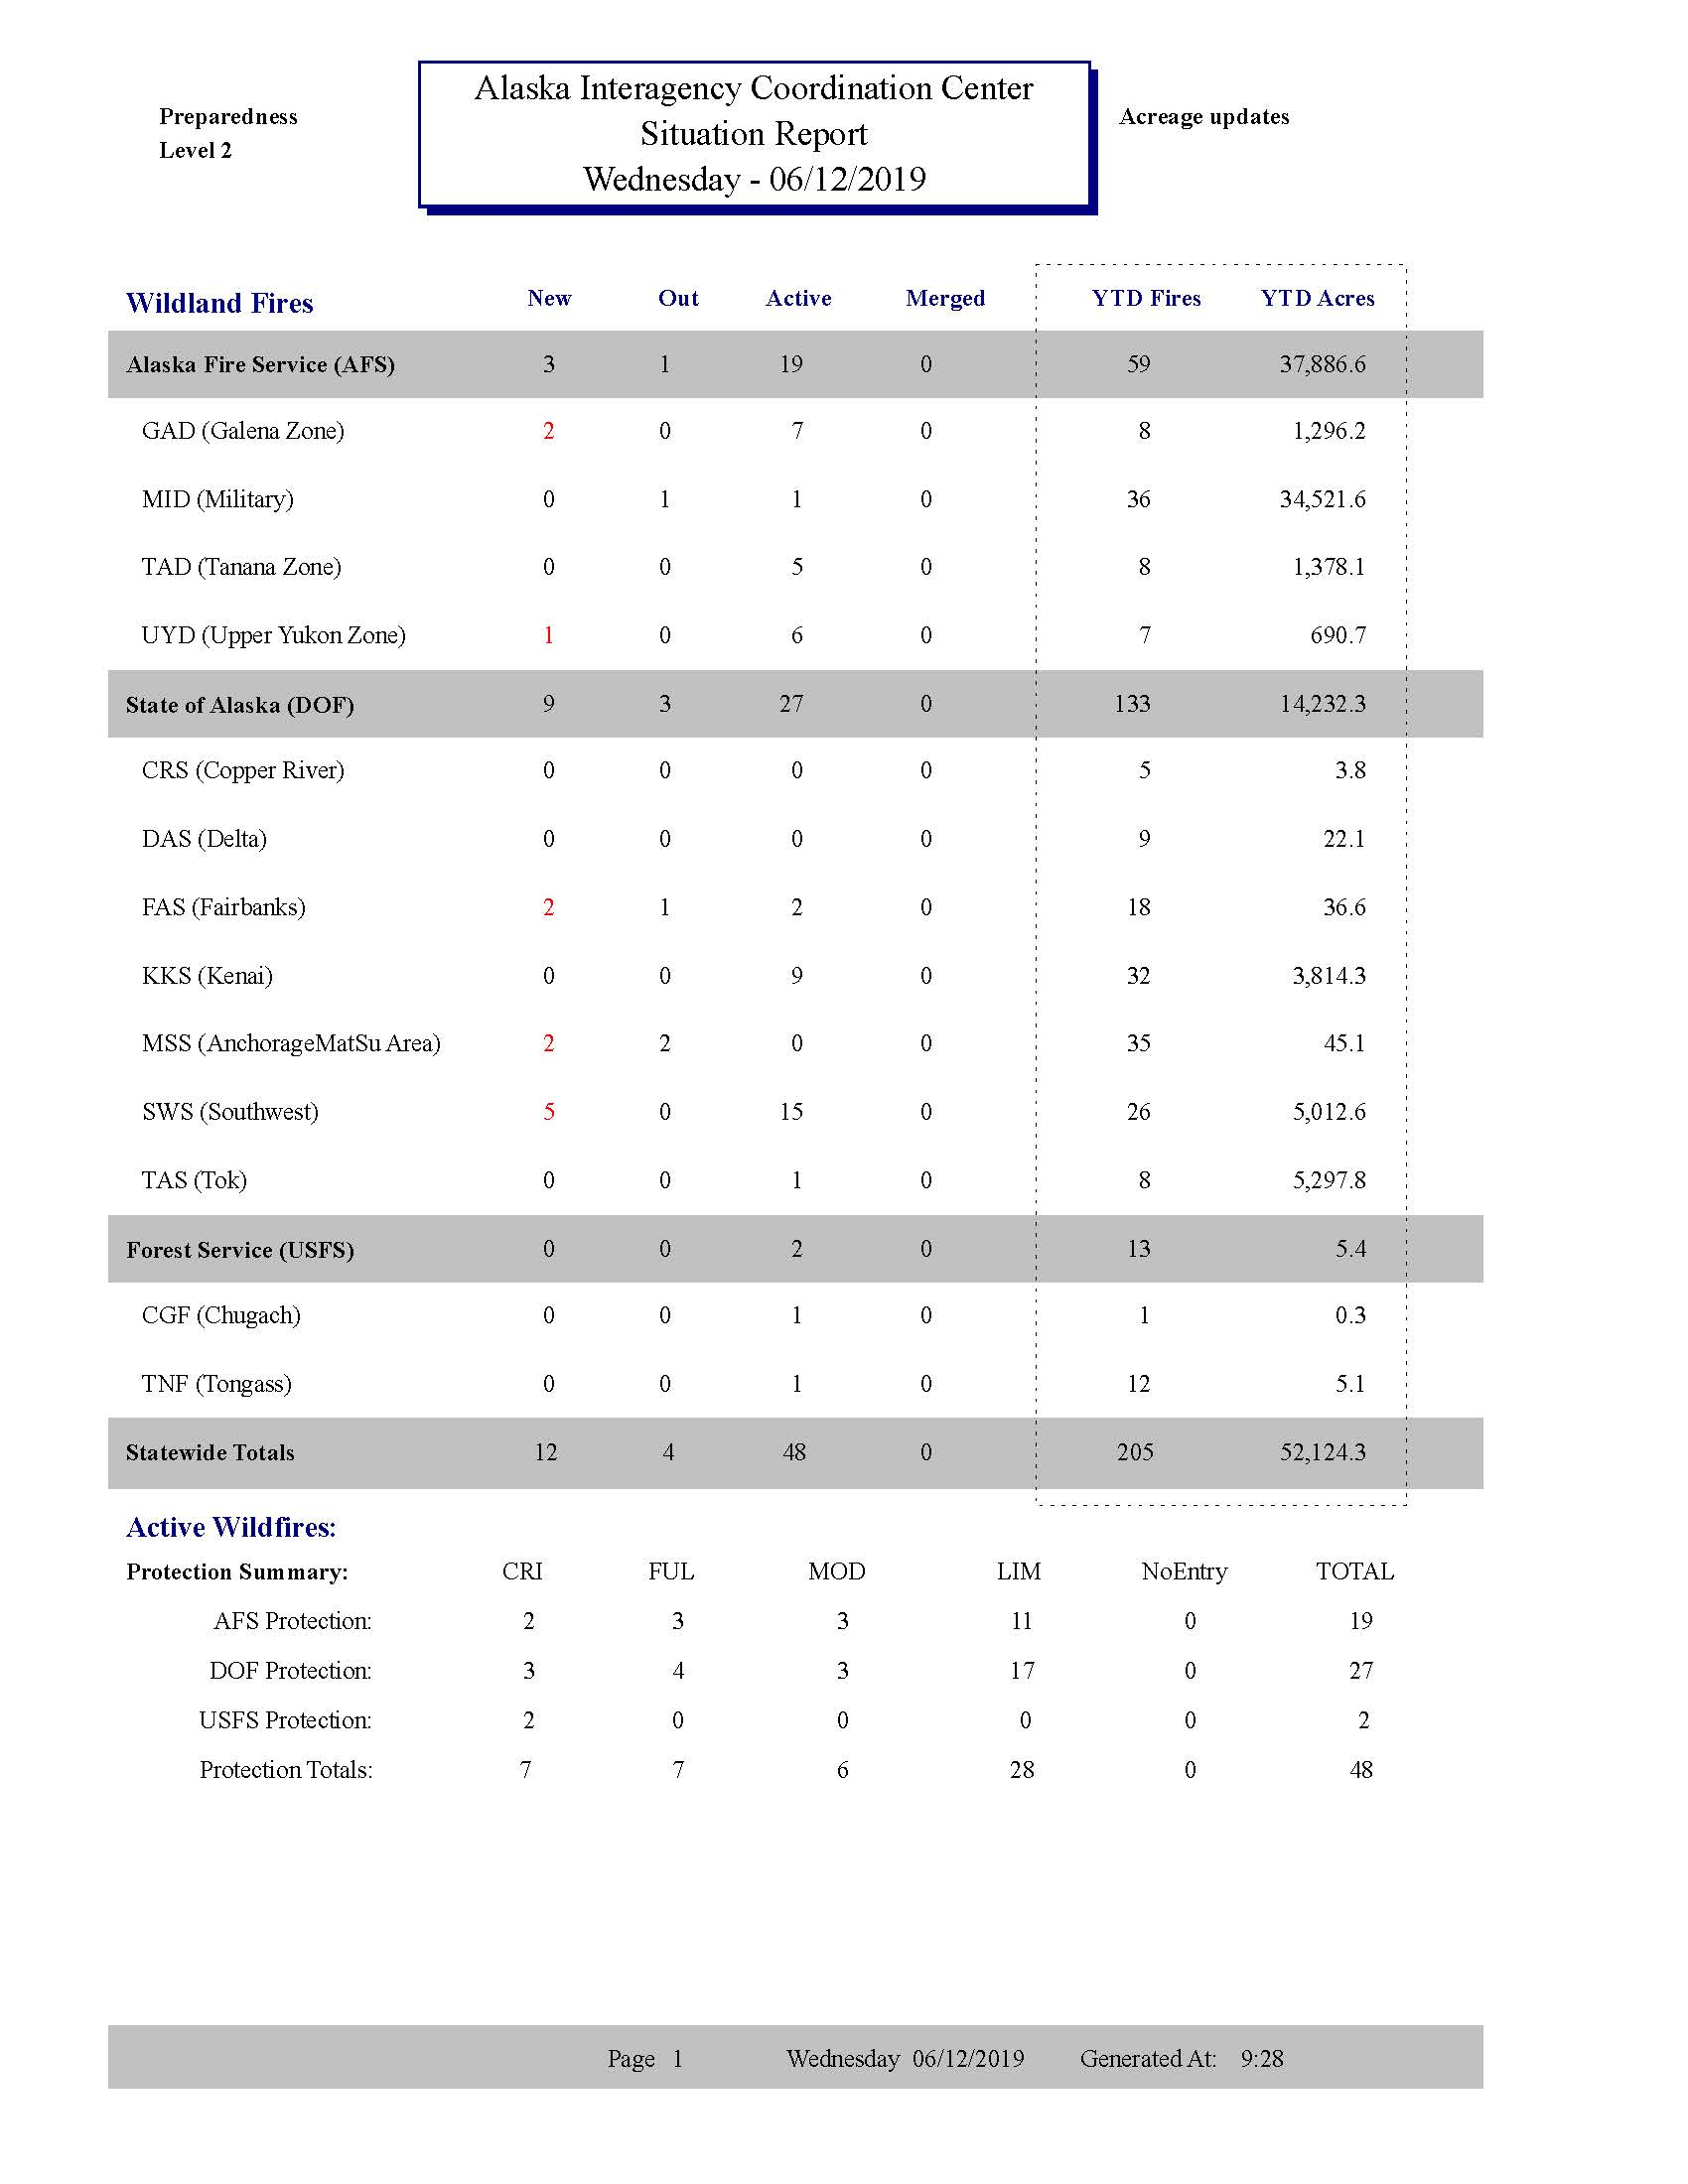 AICC Situational Report for 6-12-19